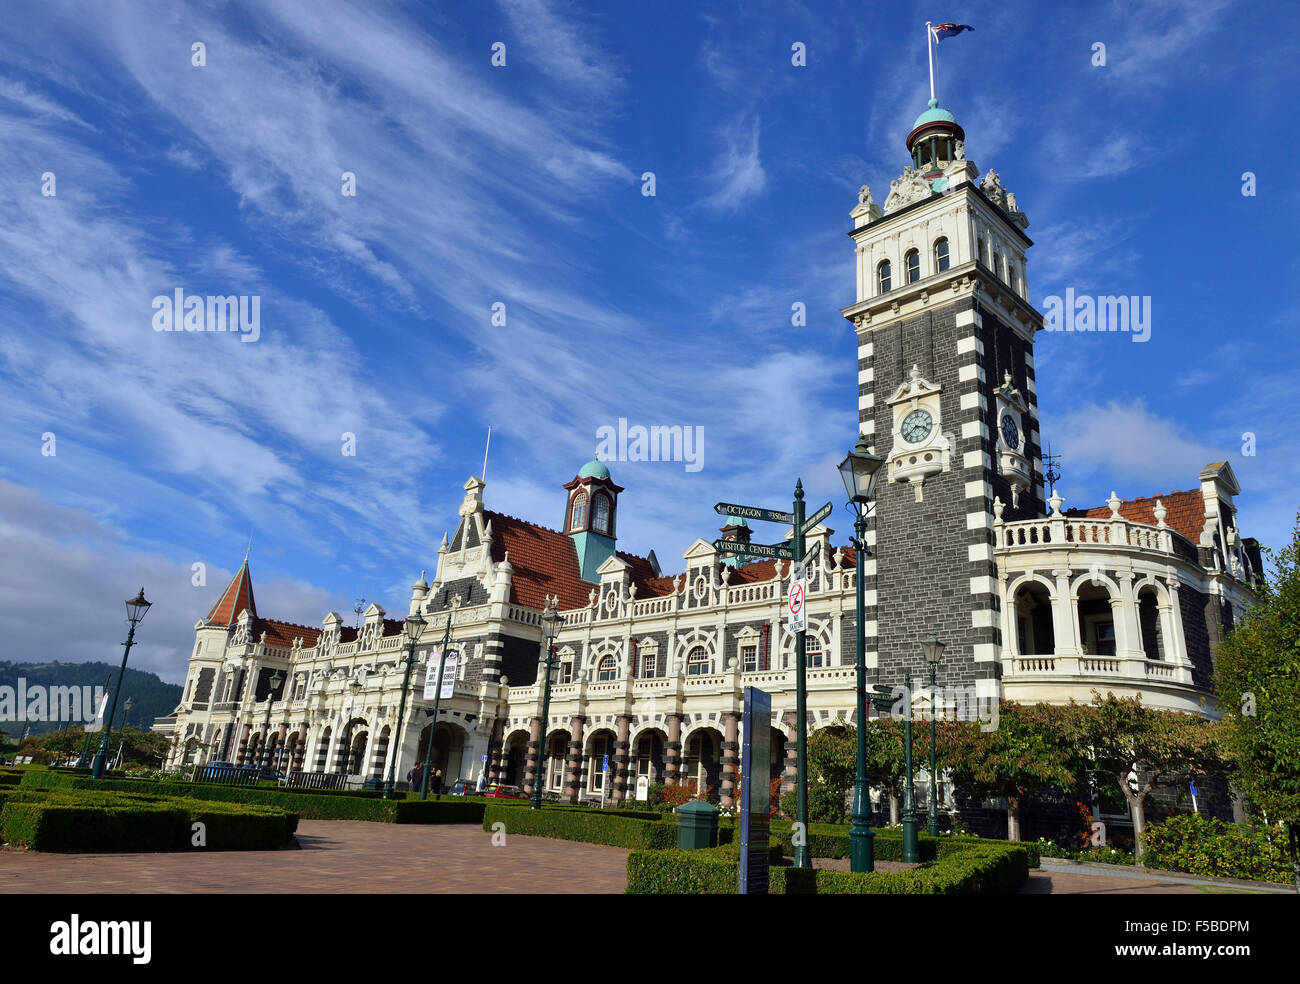 Anzac Square and Dunedin's iconic  Railway Station designed  In an eclectic, revived Flemish renaissance style - Stock Image